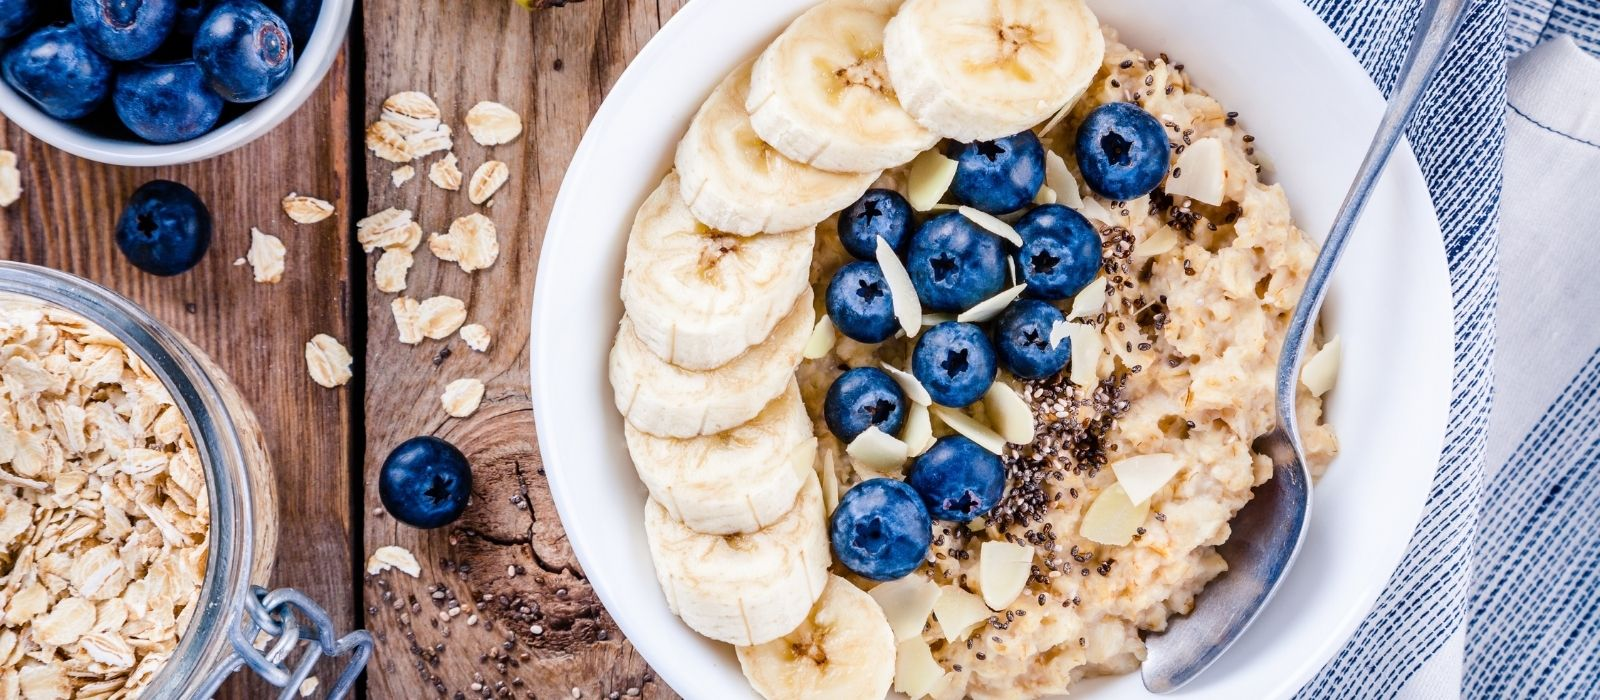 oatmeal-with-blueberries-and-bananas